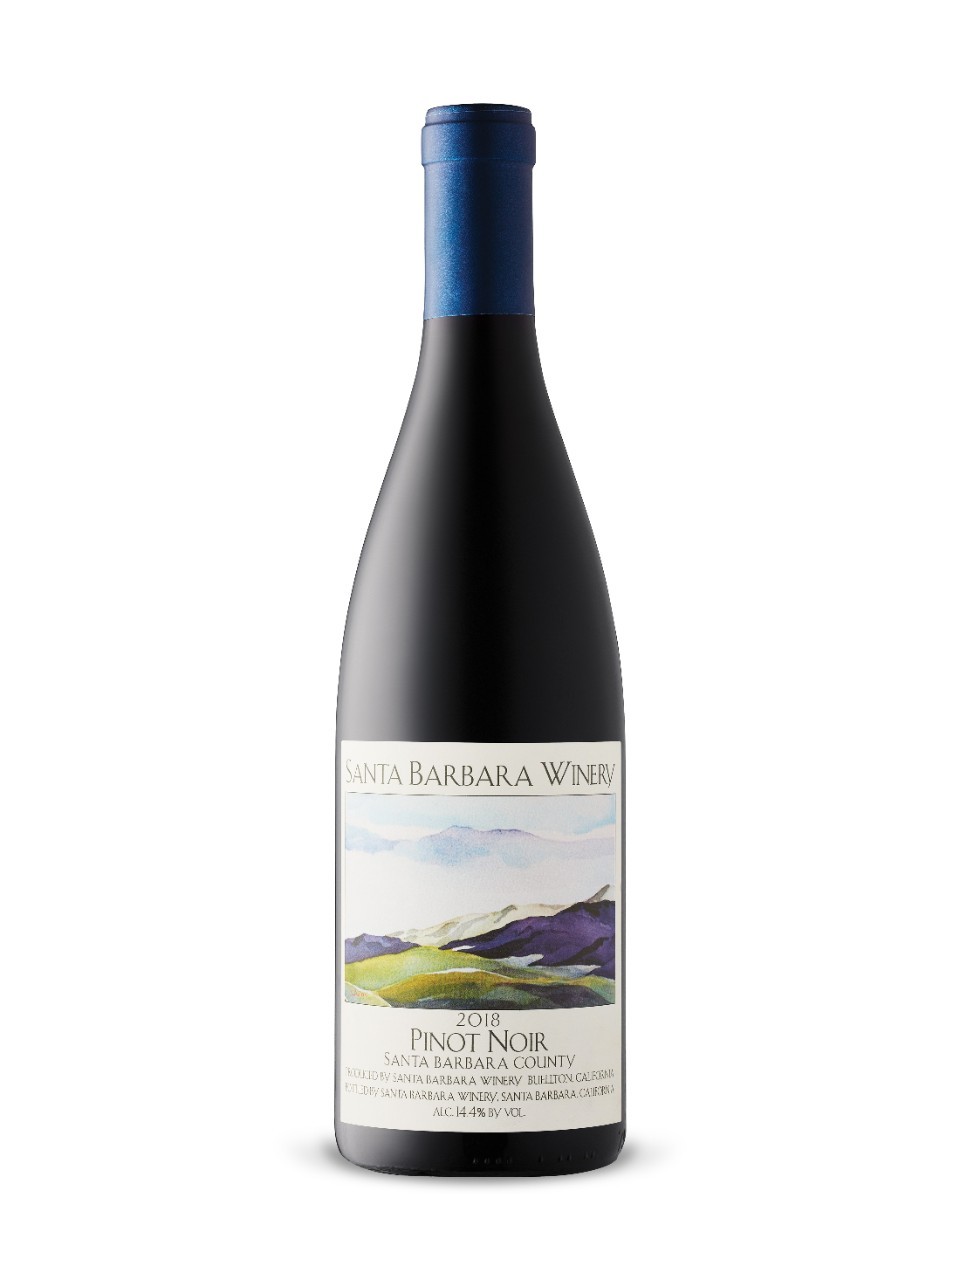 Santa Barbara Winery Pinot Noir 2015